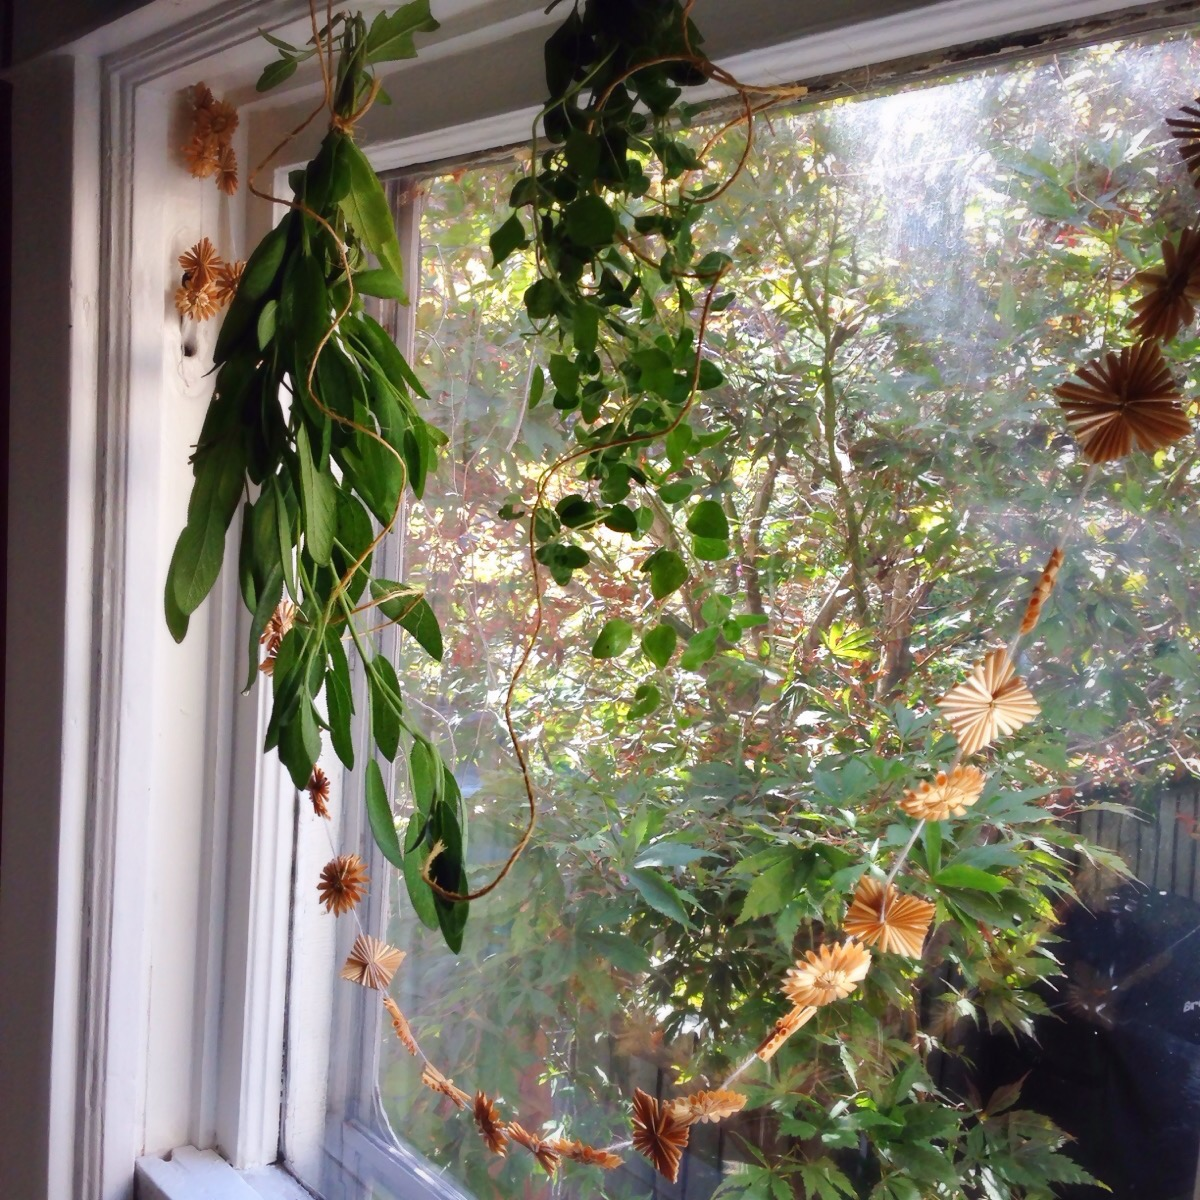 Sage and oregano bundles drying in our kitchen window